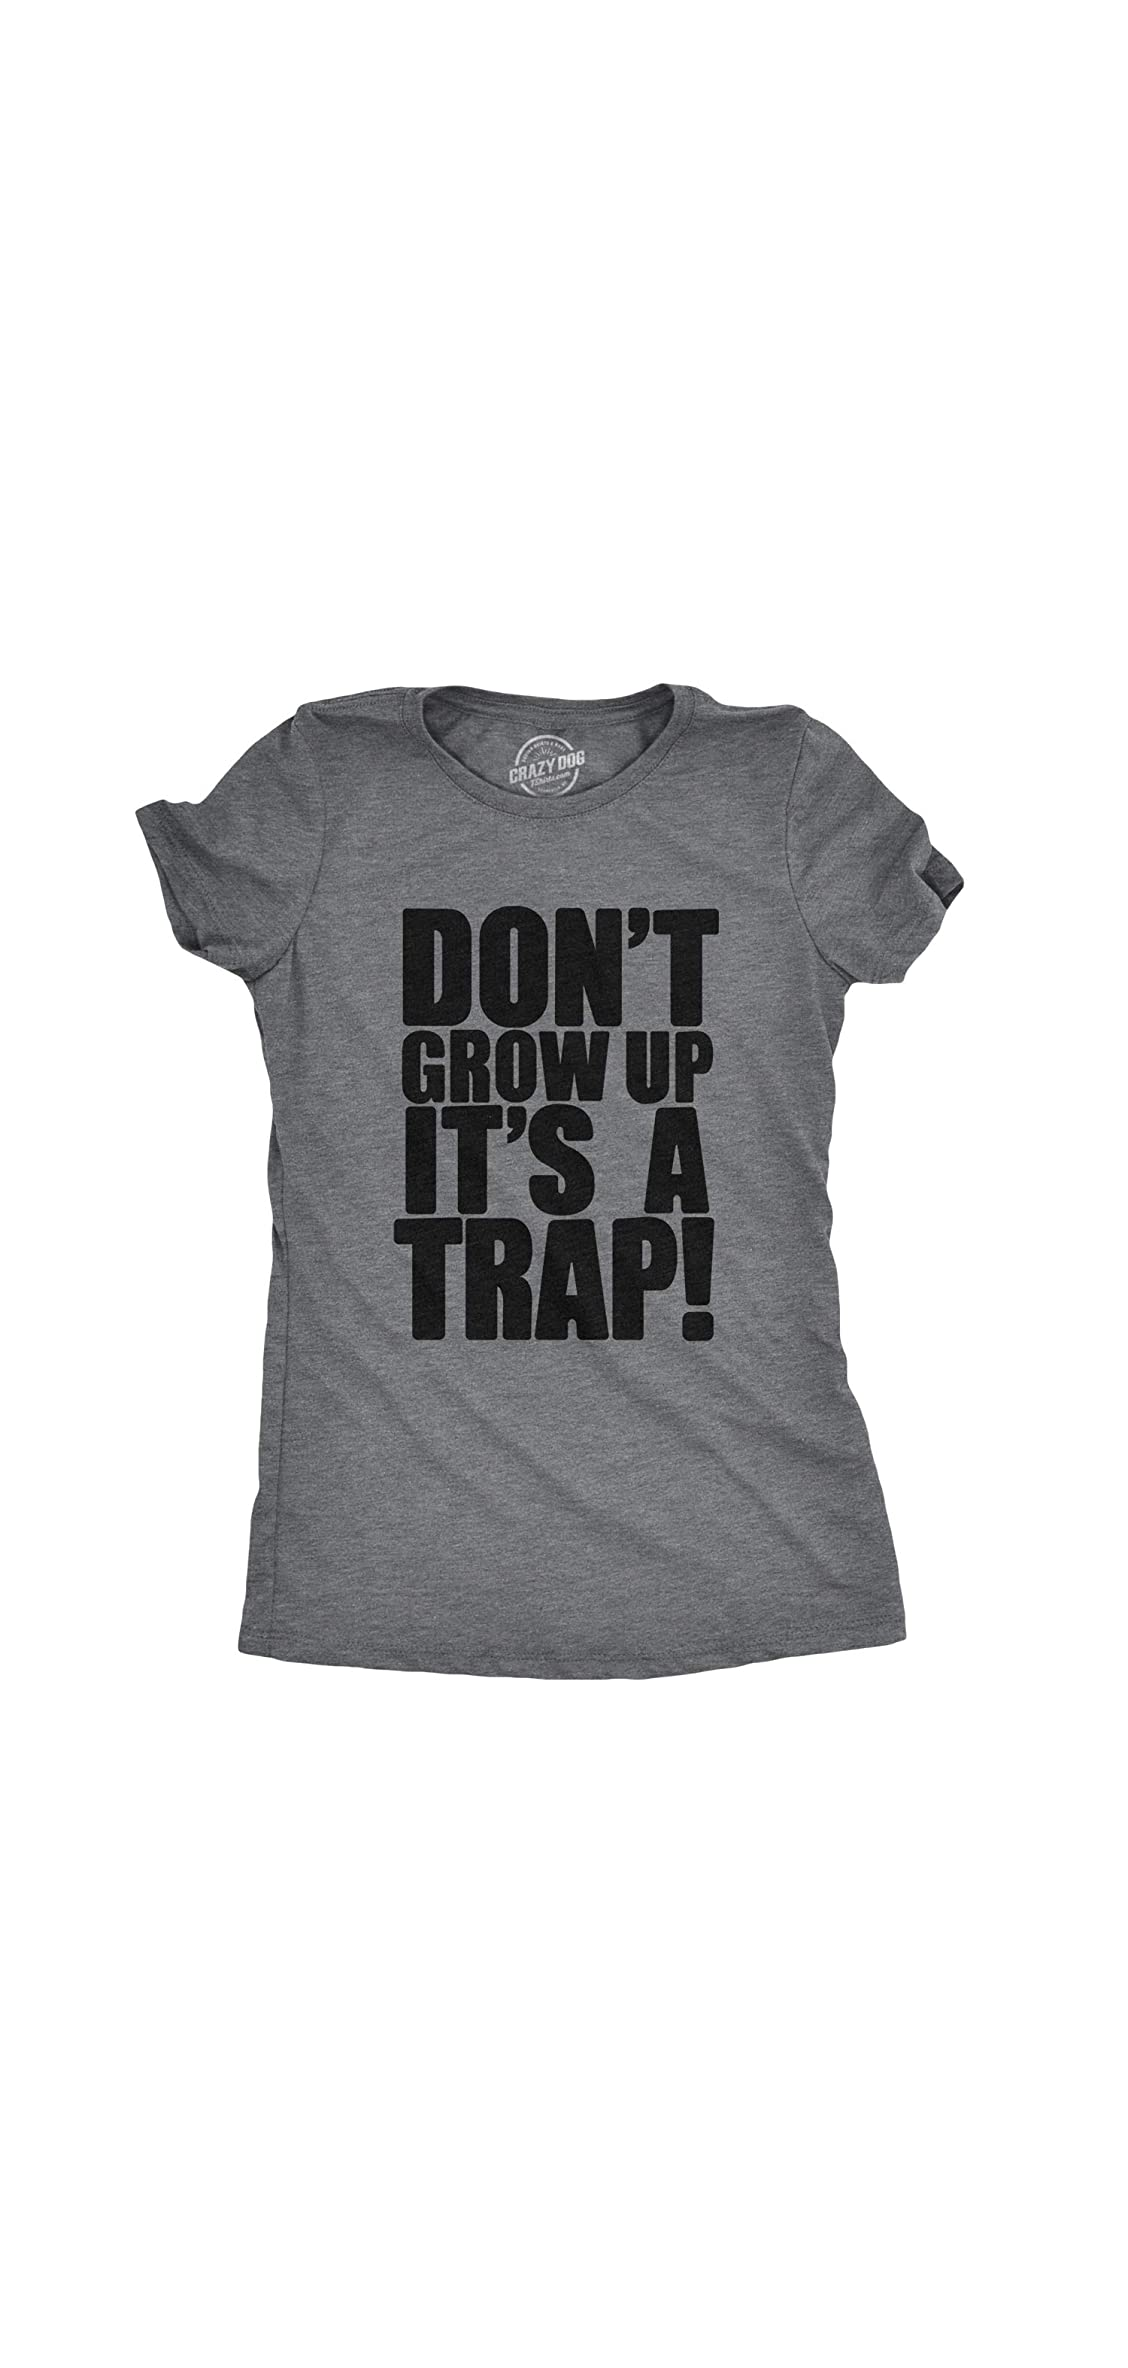 Womens Don't Grow Up Tshirt It's A Trap Funny Quote Adulting Tee